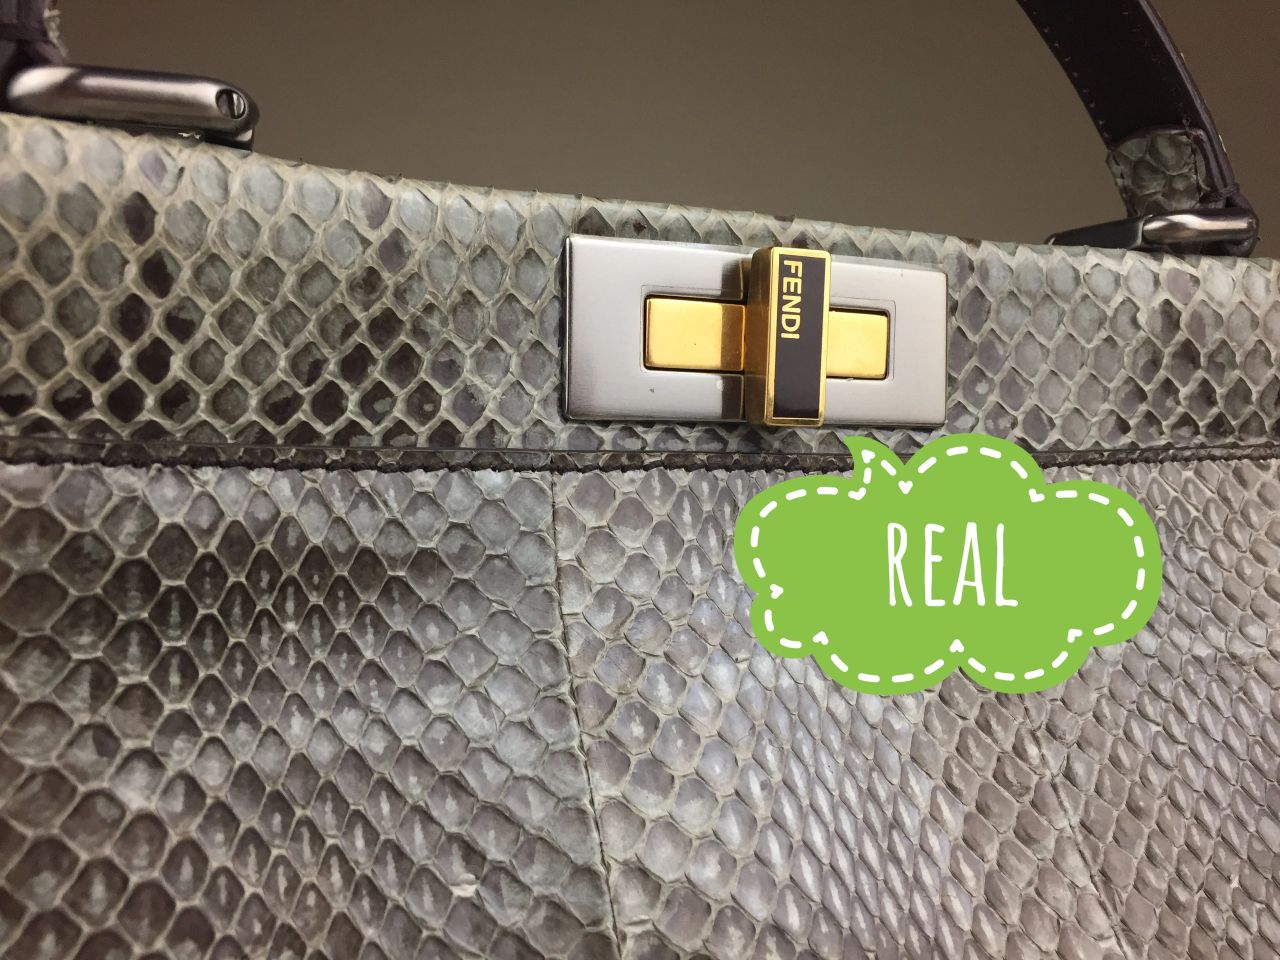 755b98022d8e How to tell a real FENDI handbag from fake. Authenticity guide